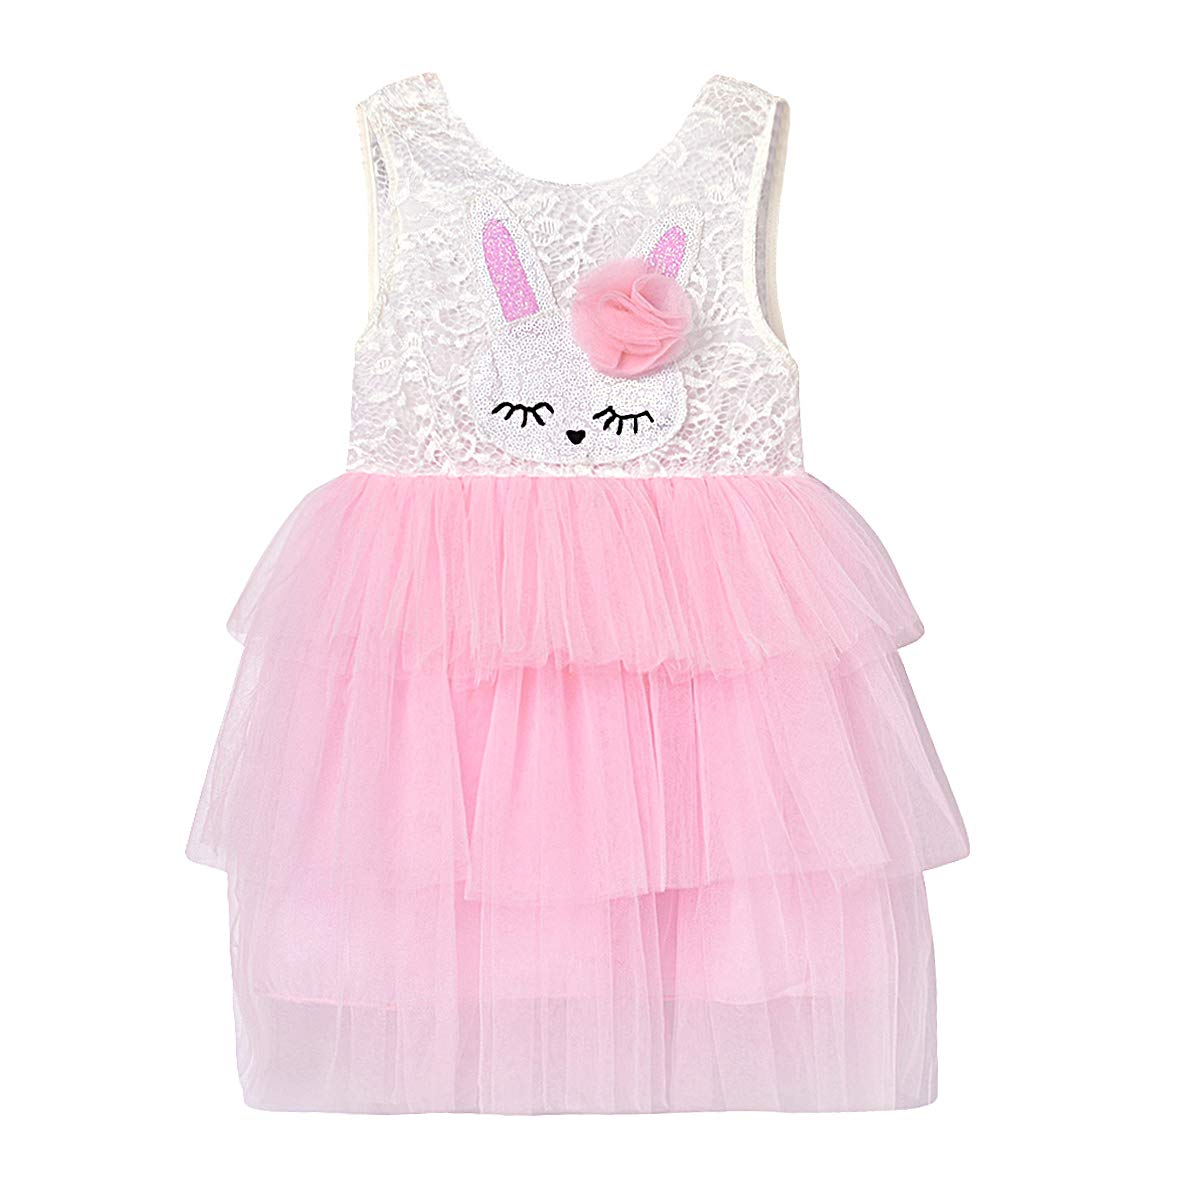 Easter Outfit for Toddler Baby Girl Backless Bunny Lace Dress Cute Princess Ruffle Dress Summer Clothes